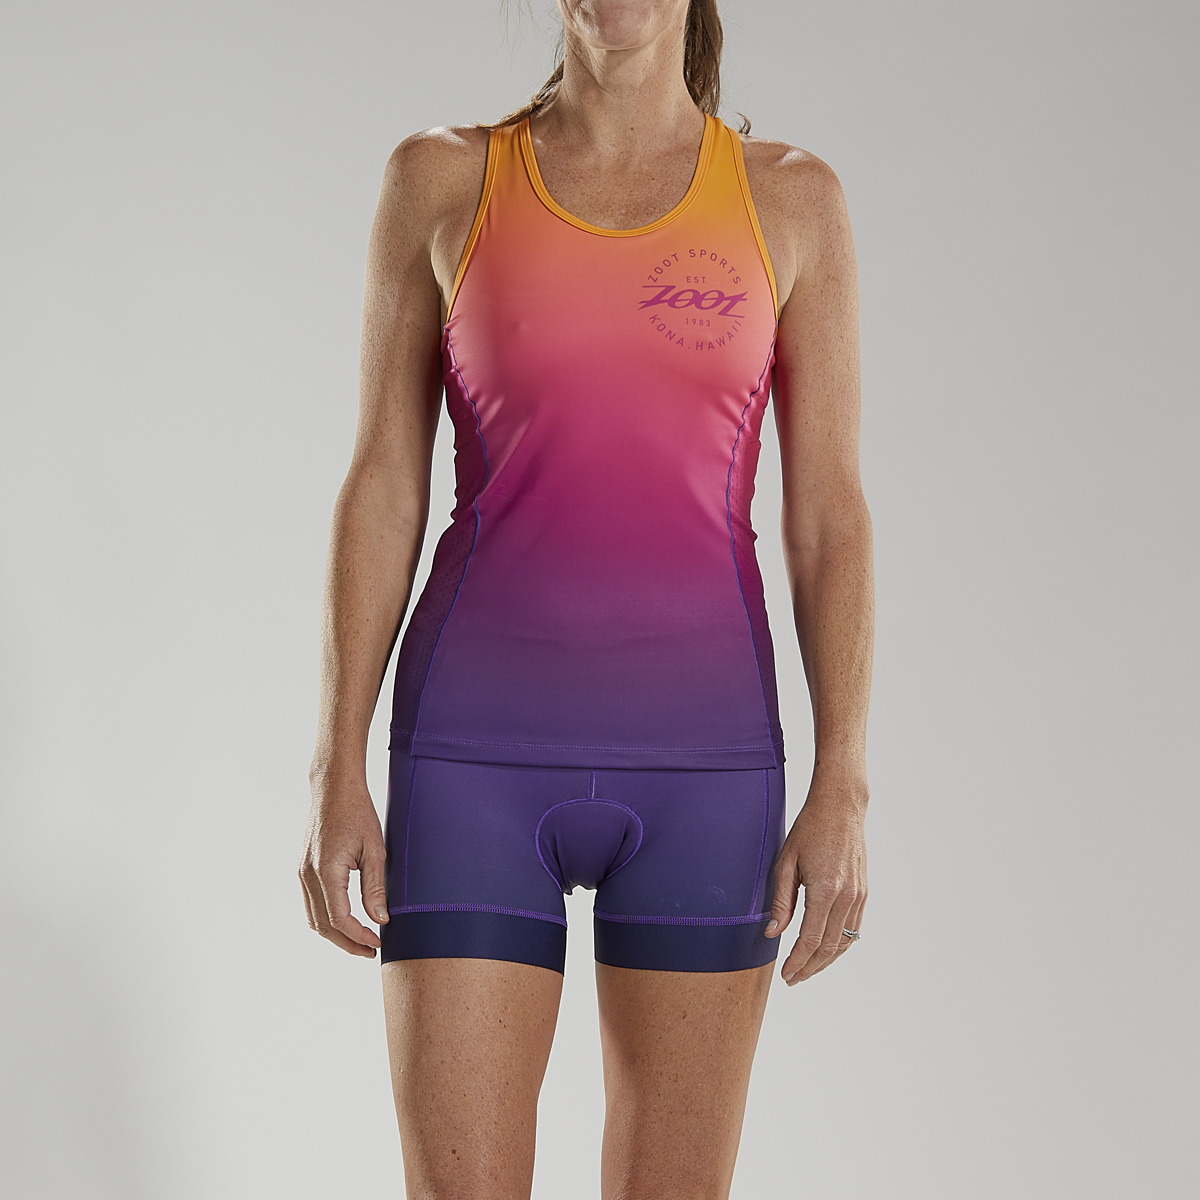 Zoot Women's Sunset Ltd Tri Racerback Top | cykeltrøje